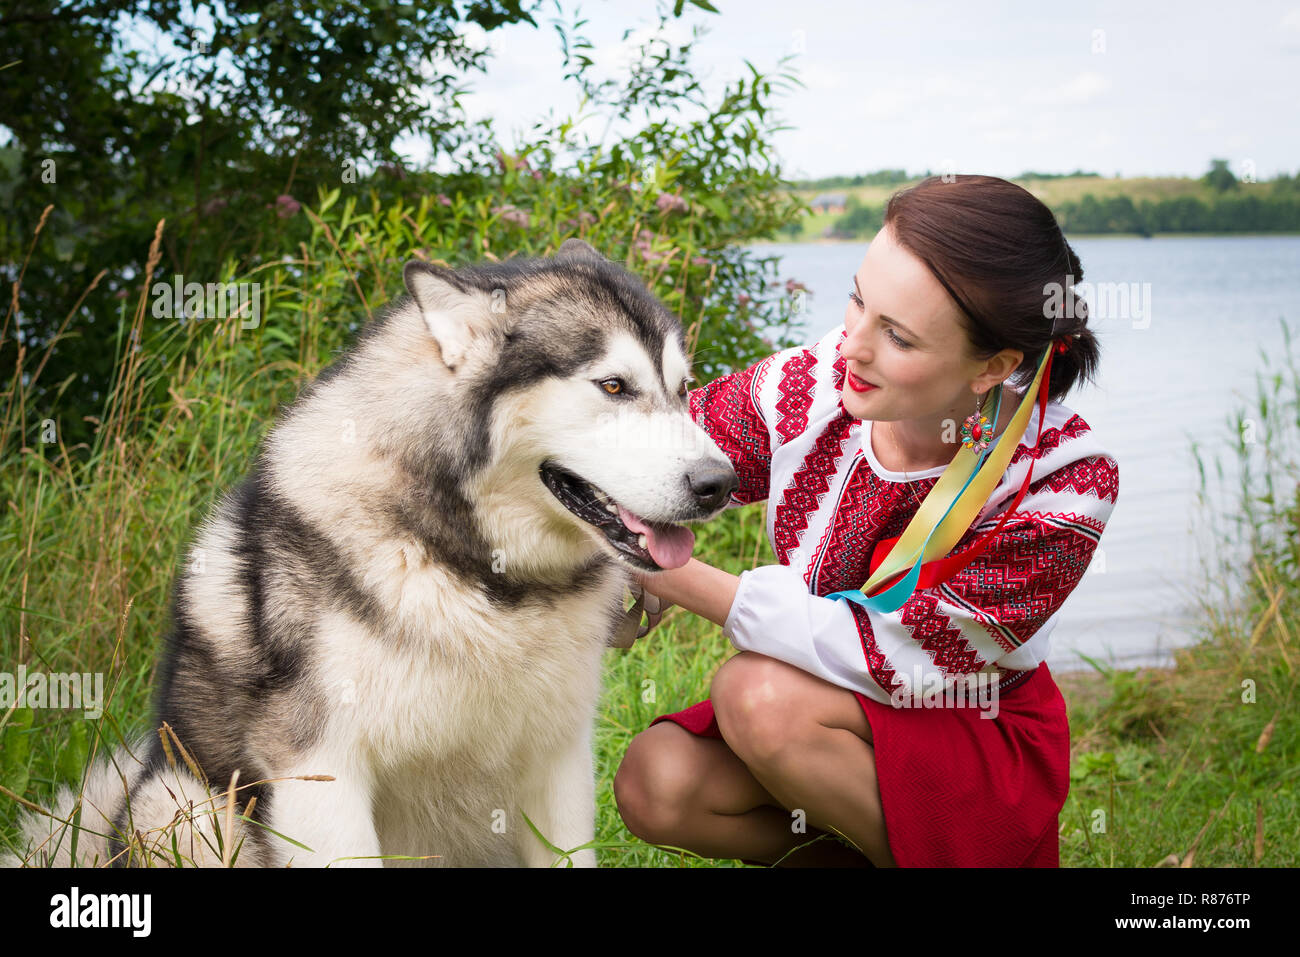 Girl dresses in a traditional Slavic attire petting a dog - Stock Image